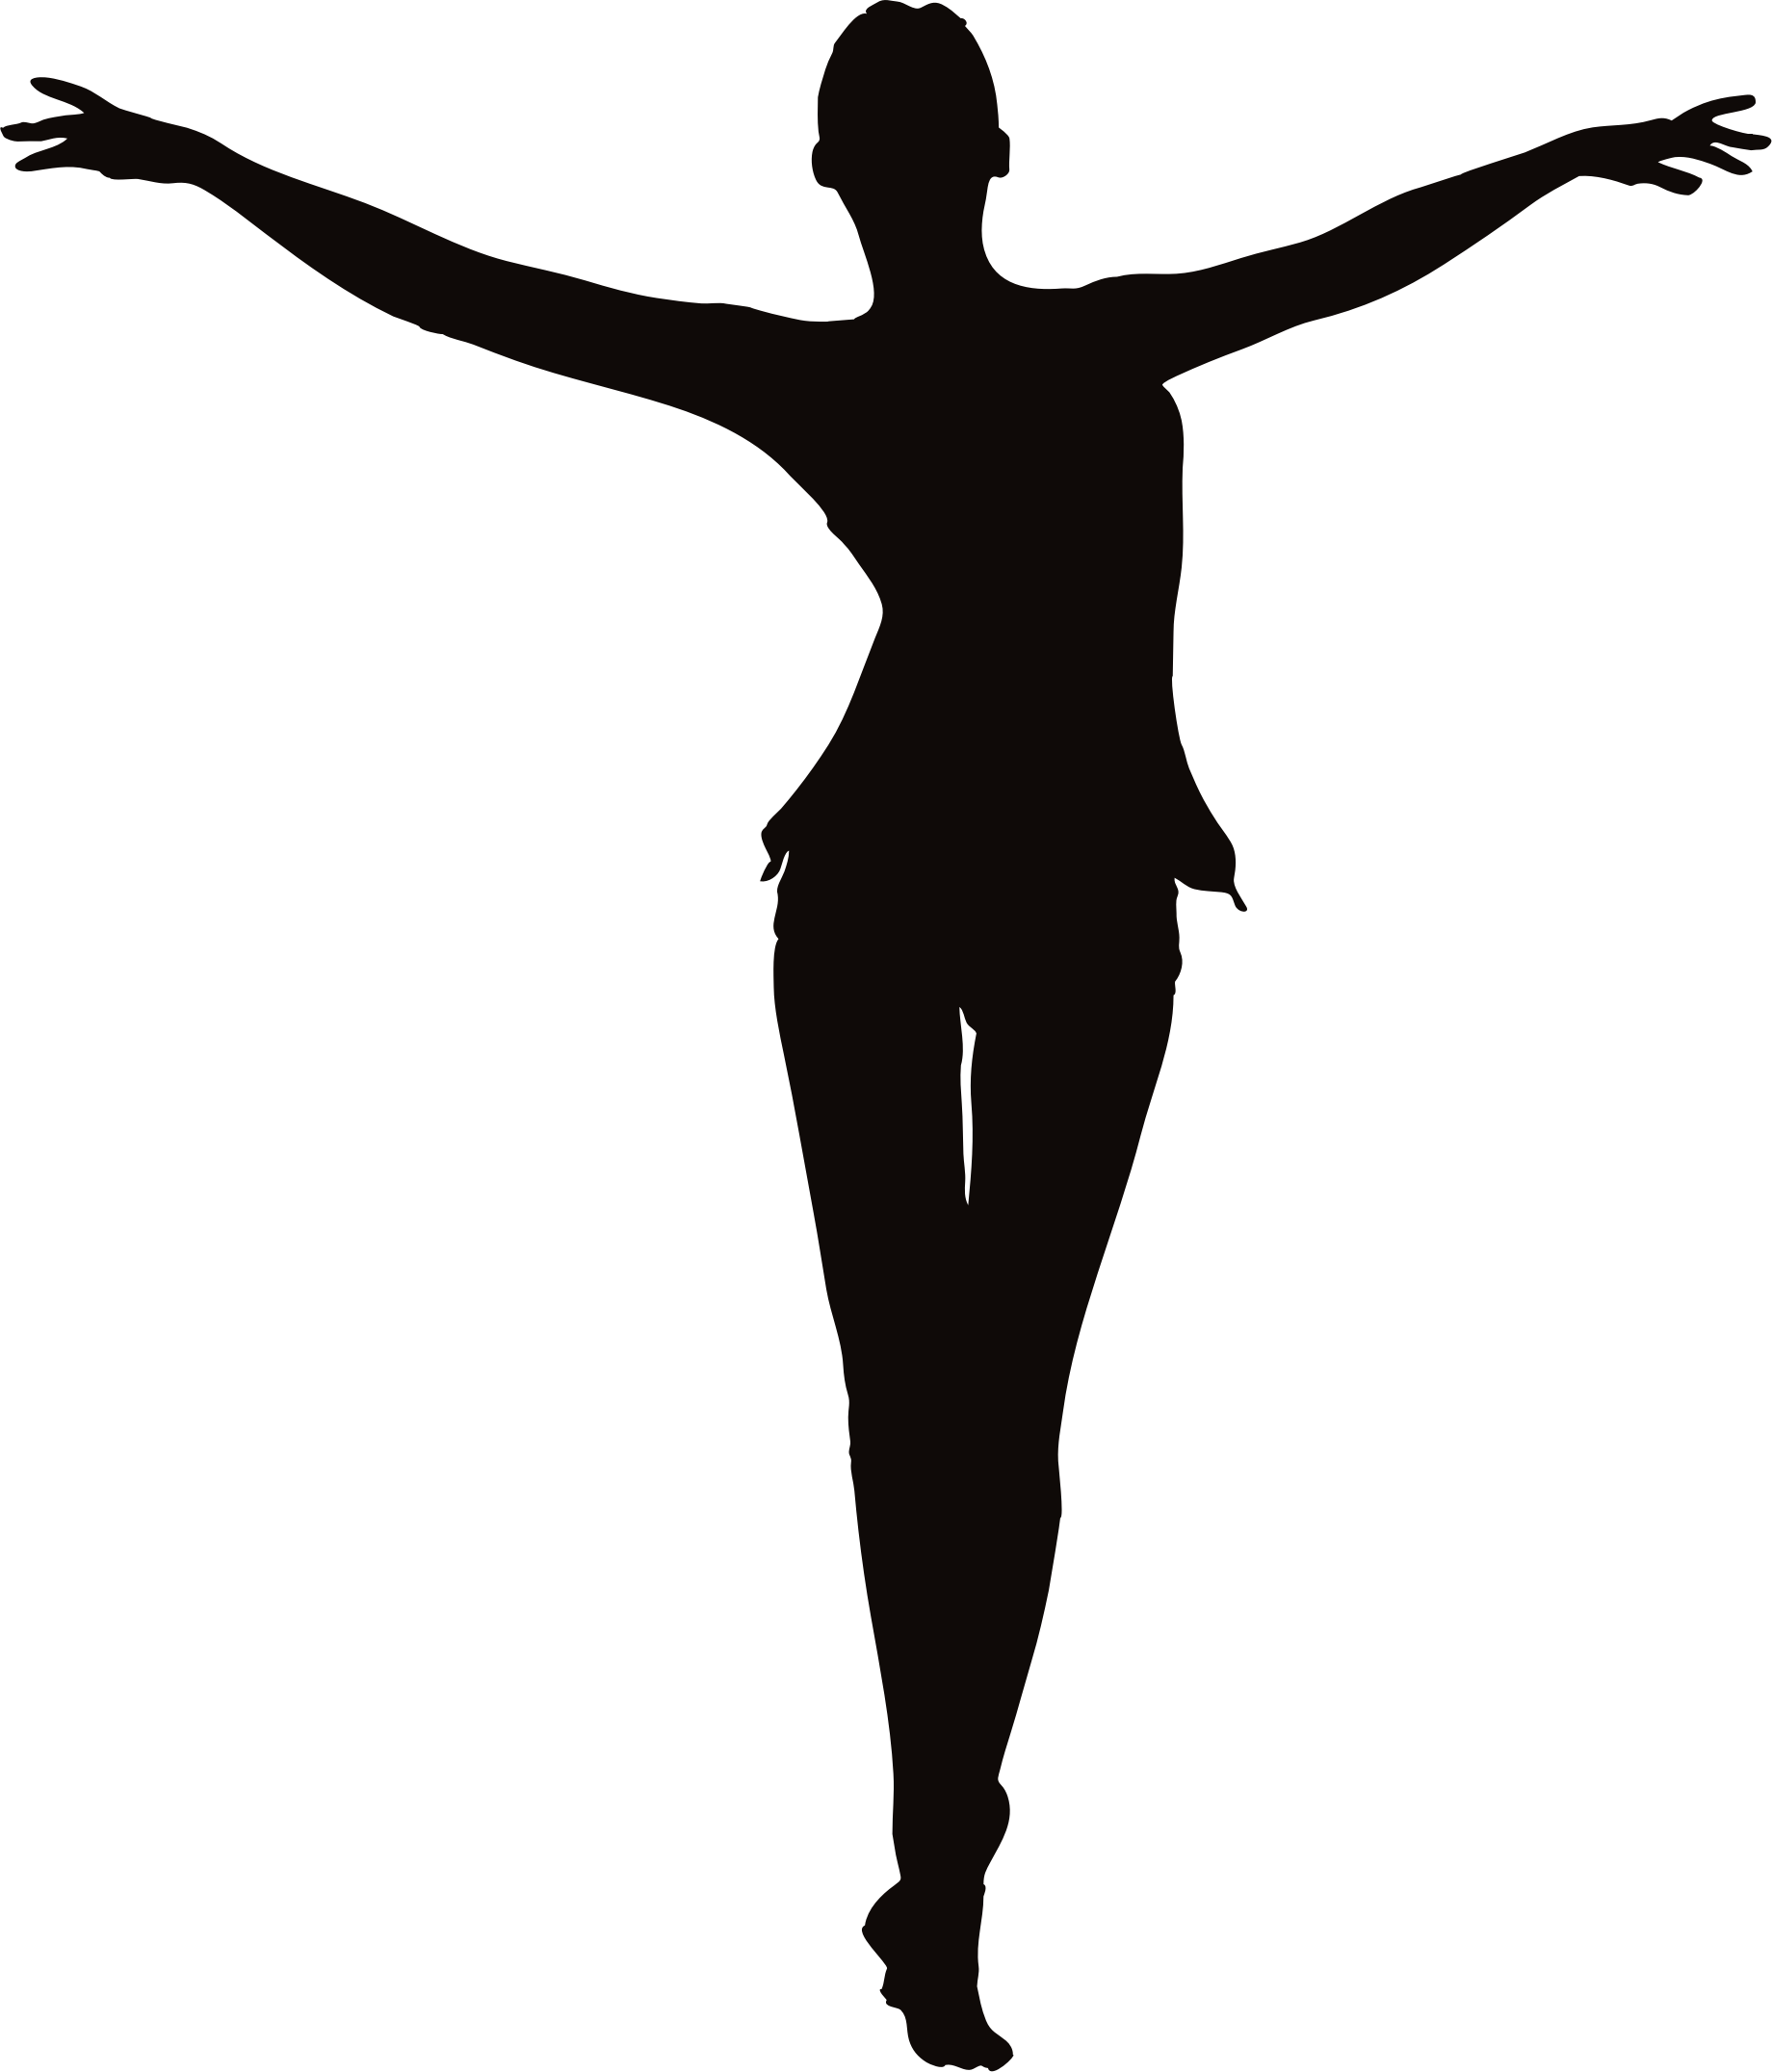 Female Figure Arms Up Clipart Woman With Outstretched Arms Silhouette Dance Images Silhouette Silhouette Art